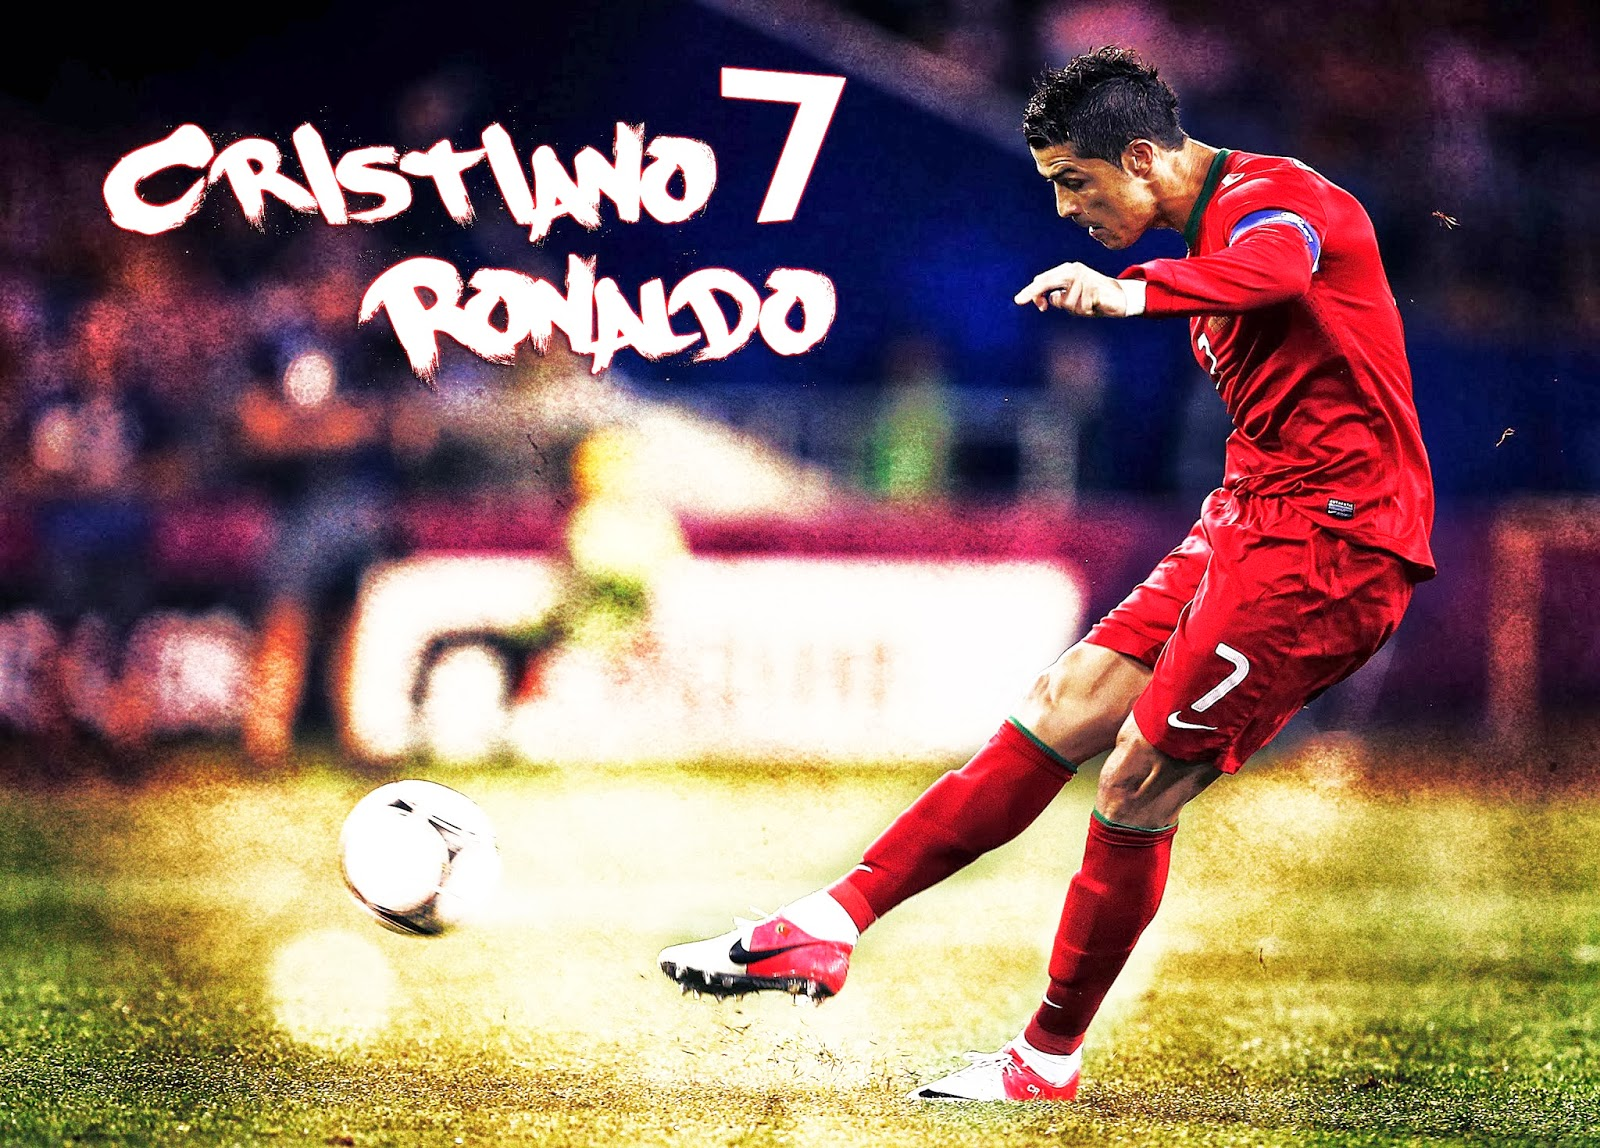 C ronaldo new hd wallpapers 2013 2014 football wallpapers hd c ronaldo new hd wallpapers 2013 2014 voltagebd Images